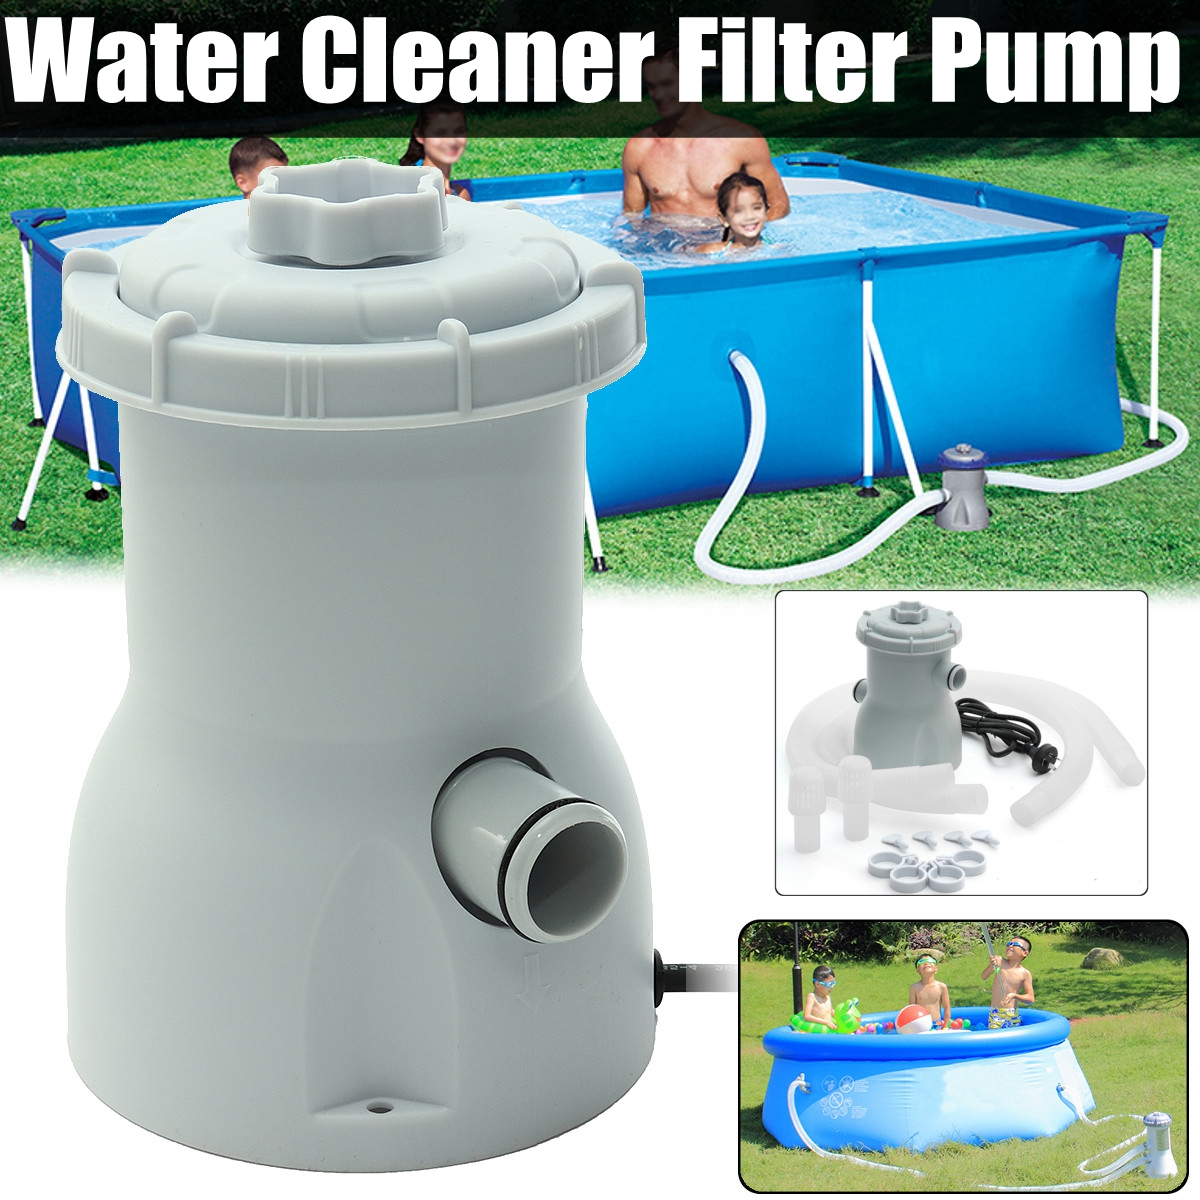 220V Electric Filter Pump Swimming Pool Filter Pump Water Clean Clear Dirty Pool Pond Pumps Filter/swimming Pool Water Cleaner